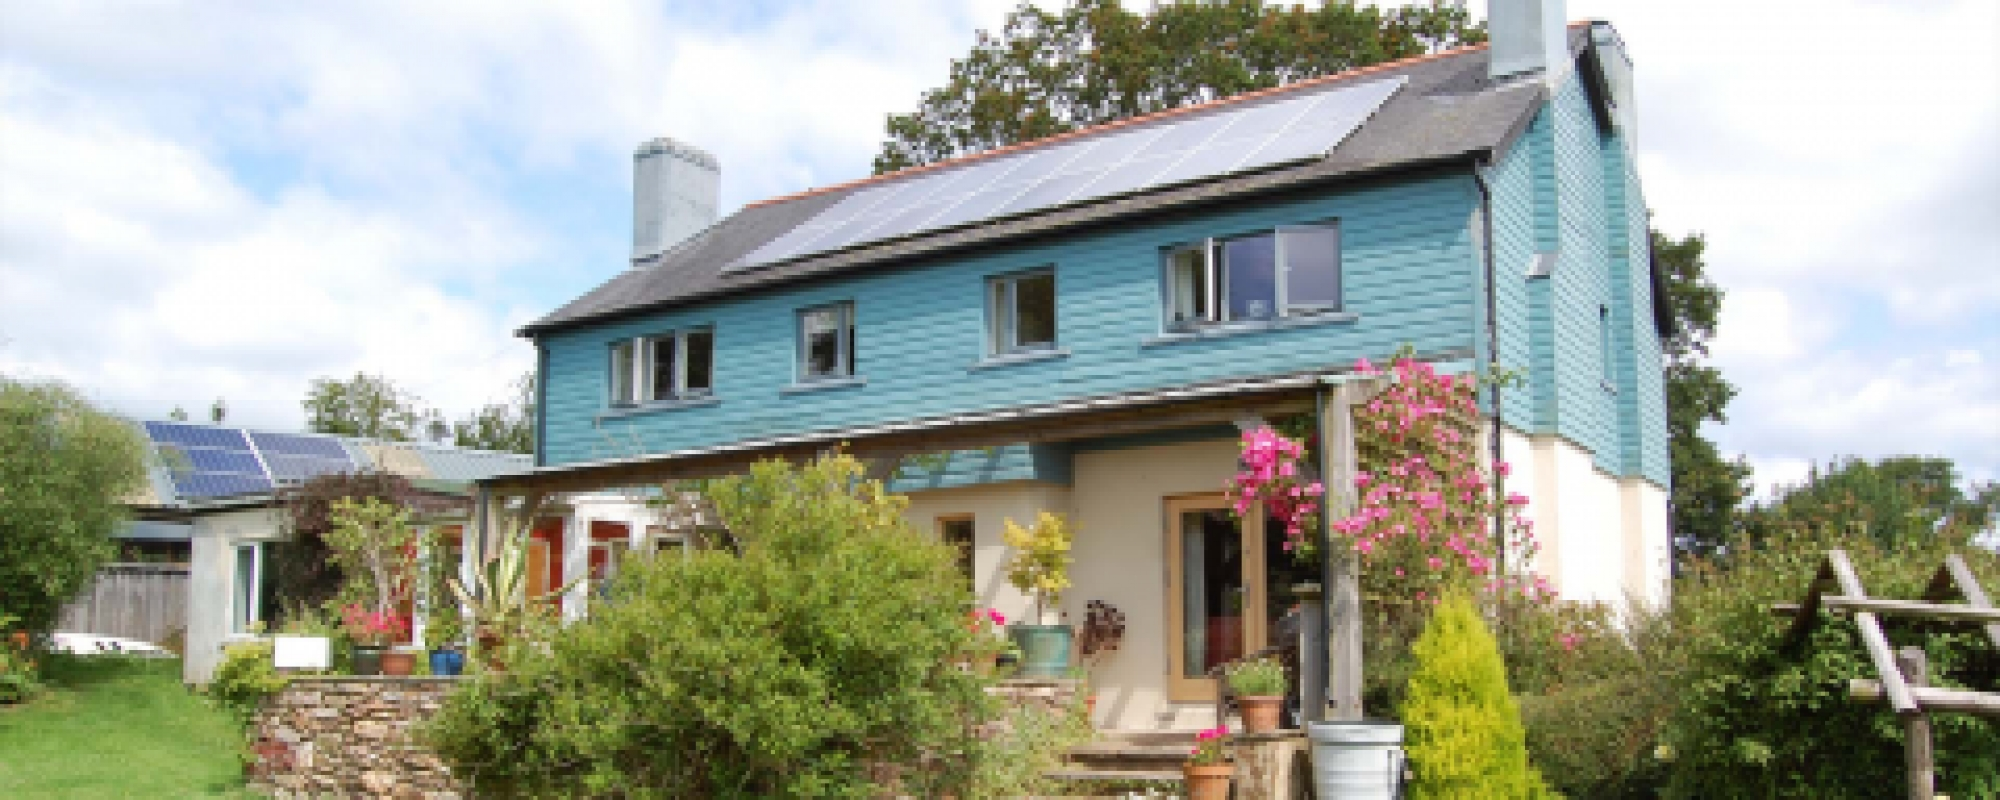 Painted Uk grown Cedar Cladding